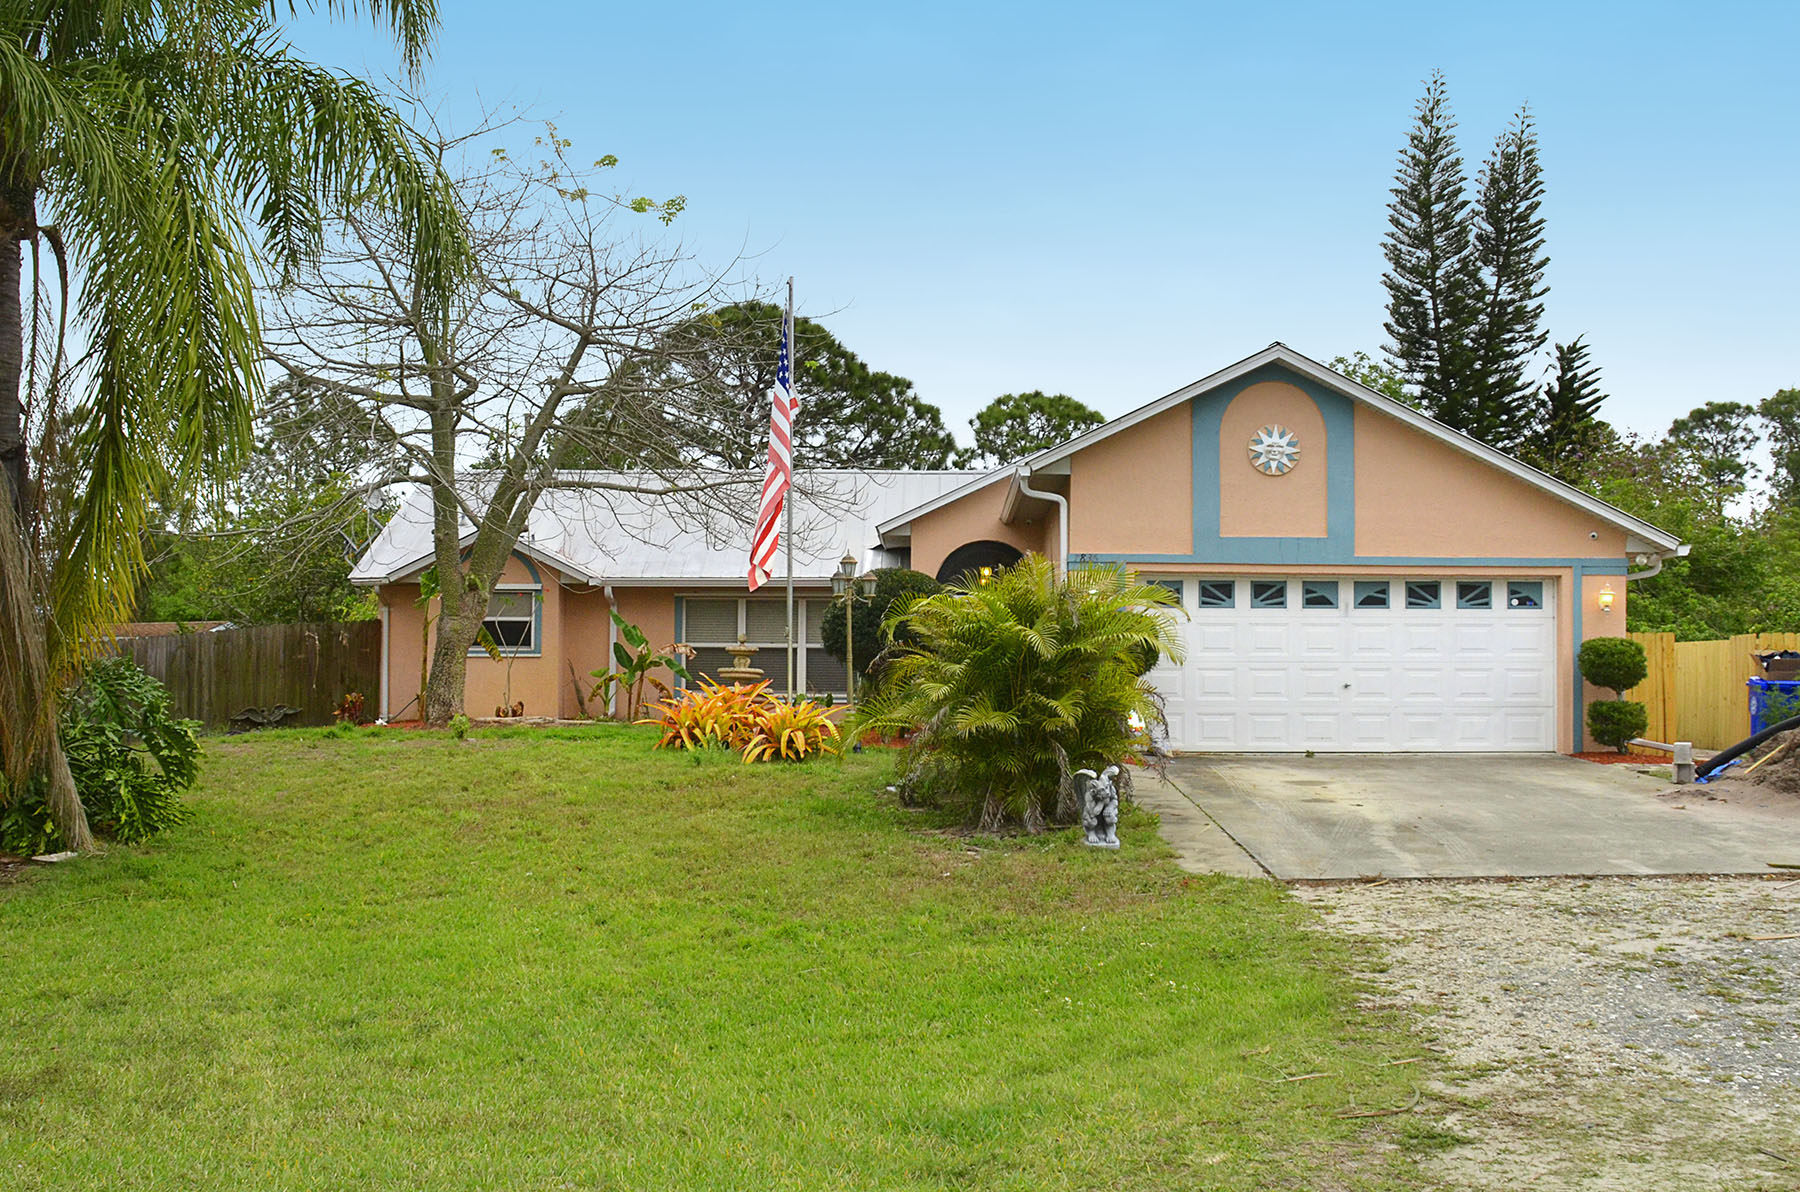 Country Kitchen Vero Beach Real Estate Vero Beach Buy Or Sell With Steve Rennick